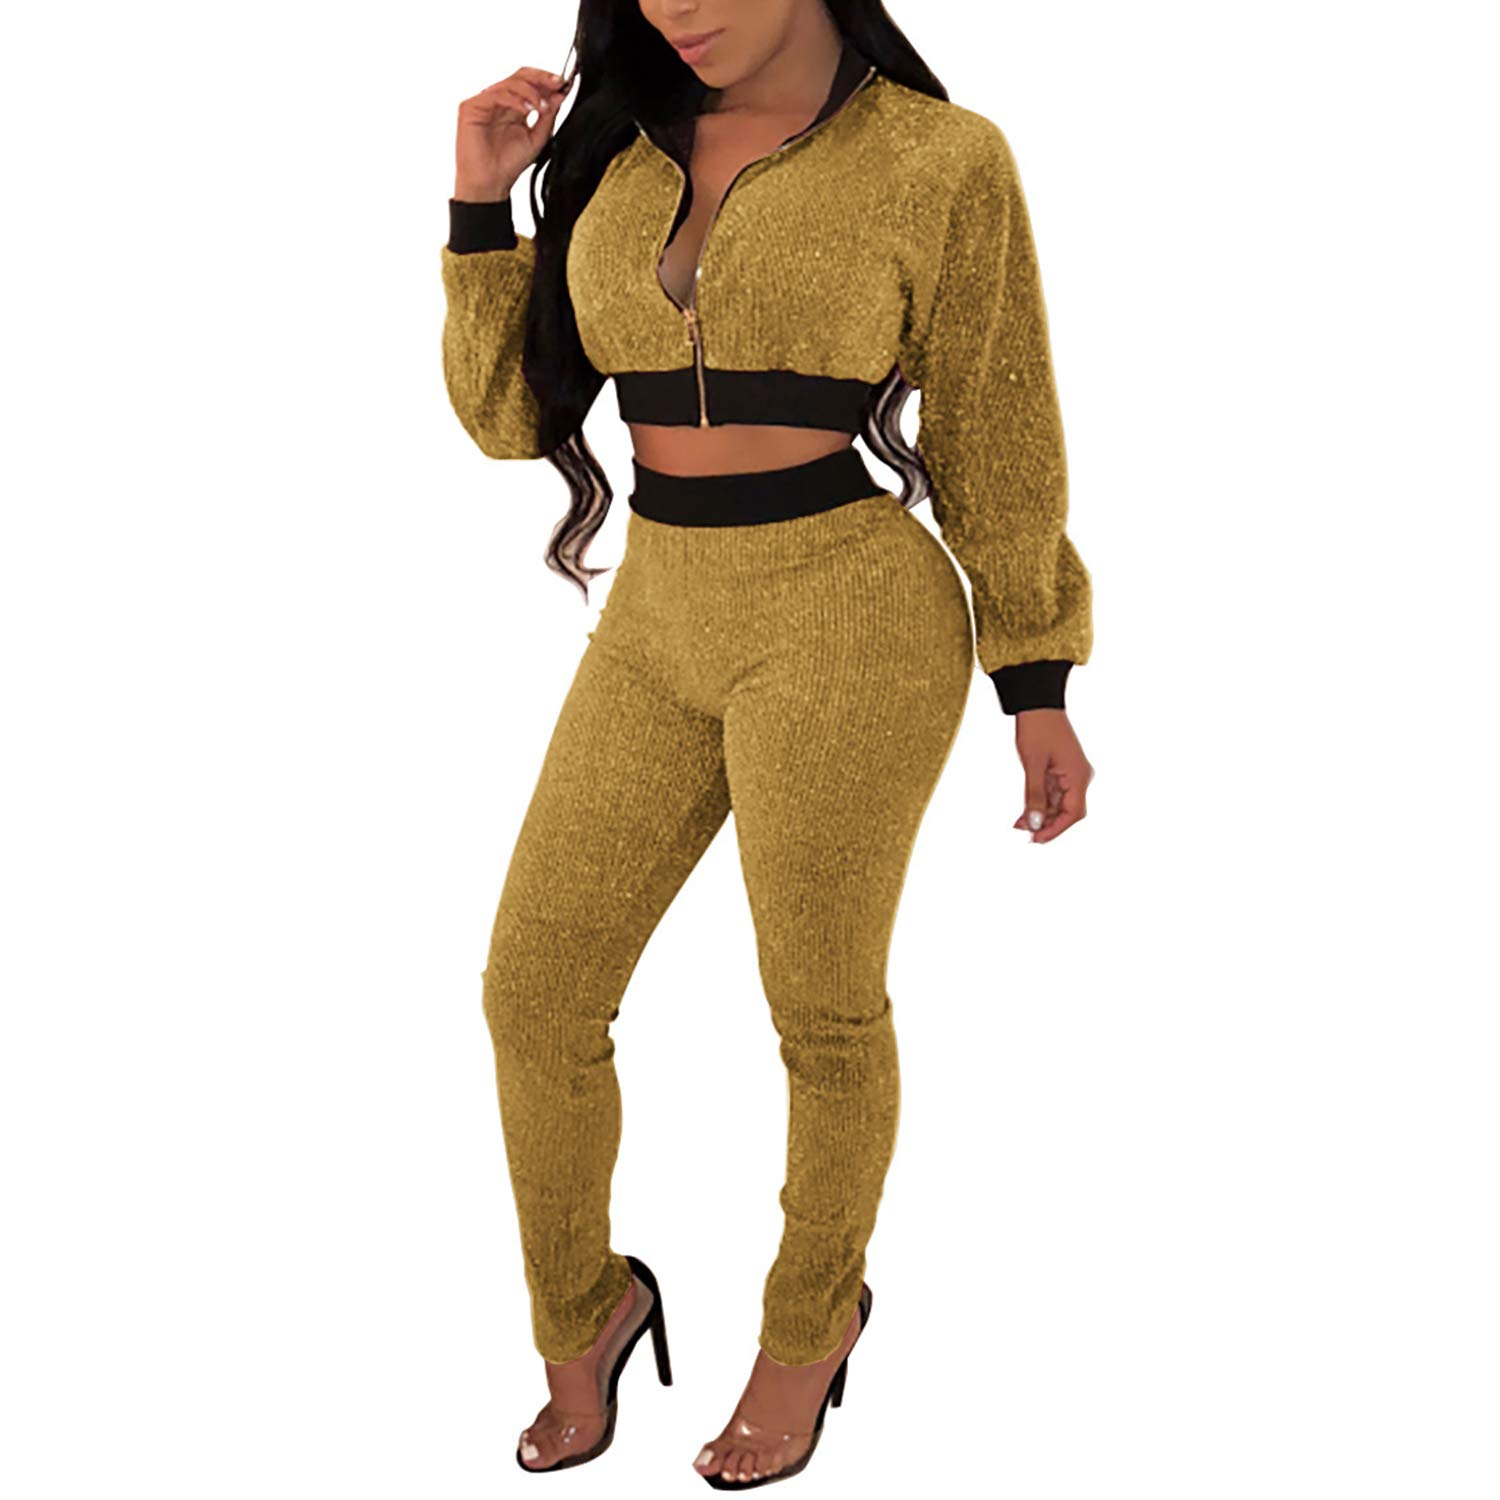 Bodycon Club Outfits Sequins Crop Top Zipper Jackets Long Pants Sweatsuit Gold XL by Sherro